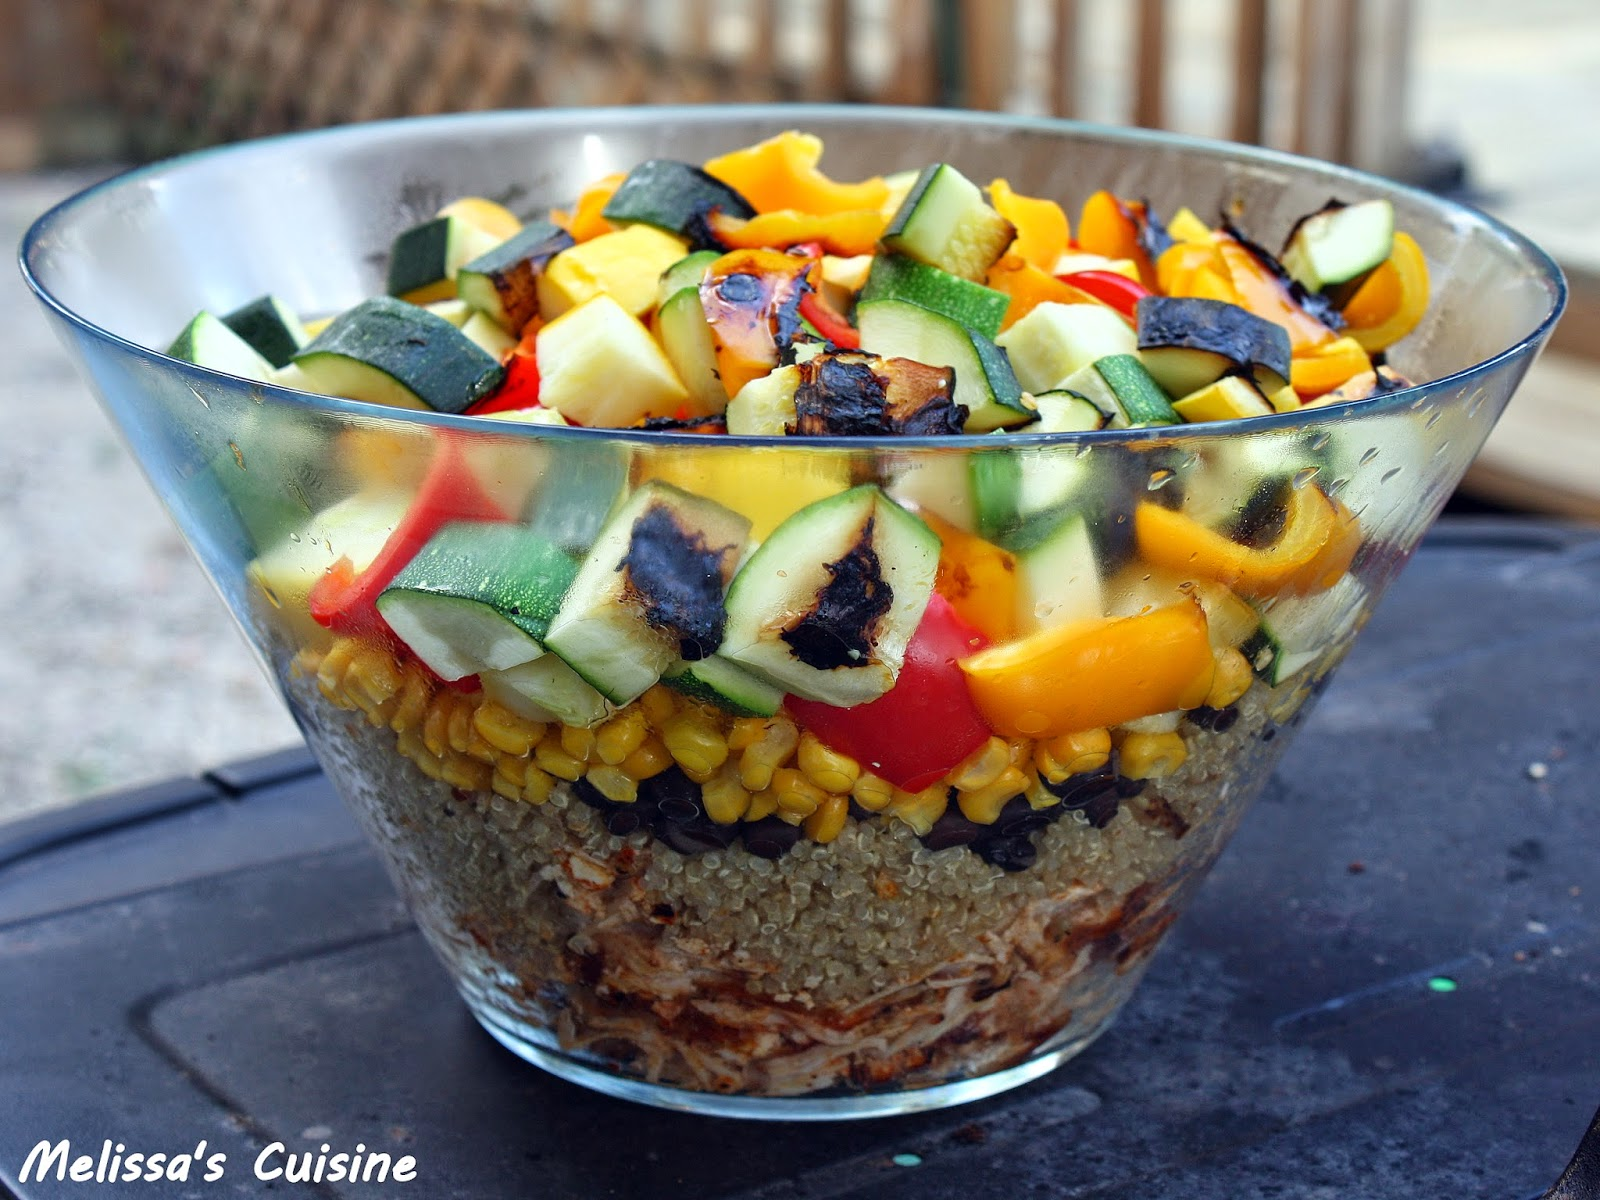 Melissa's Cuisine: Buffalo Chicken & Grilled Vegetable Quinoa Salad